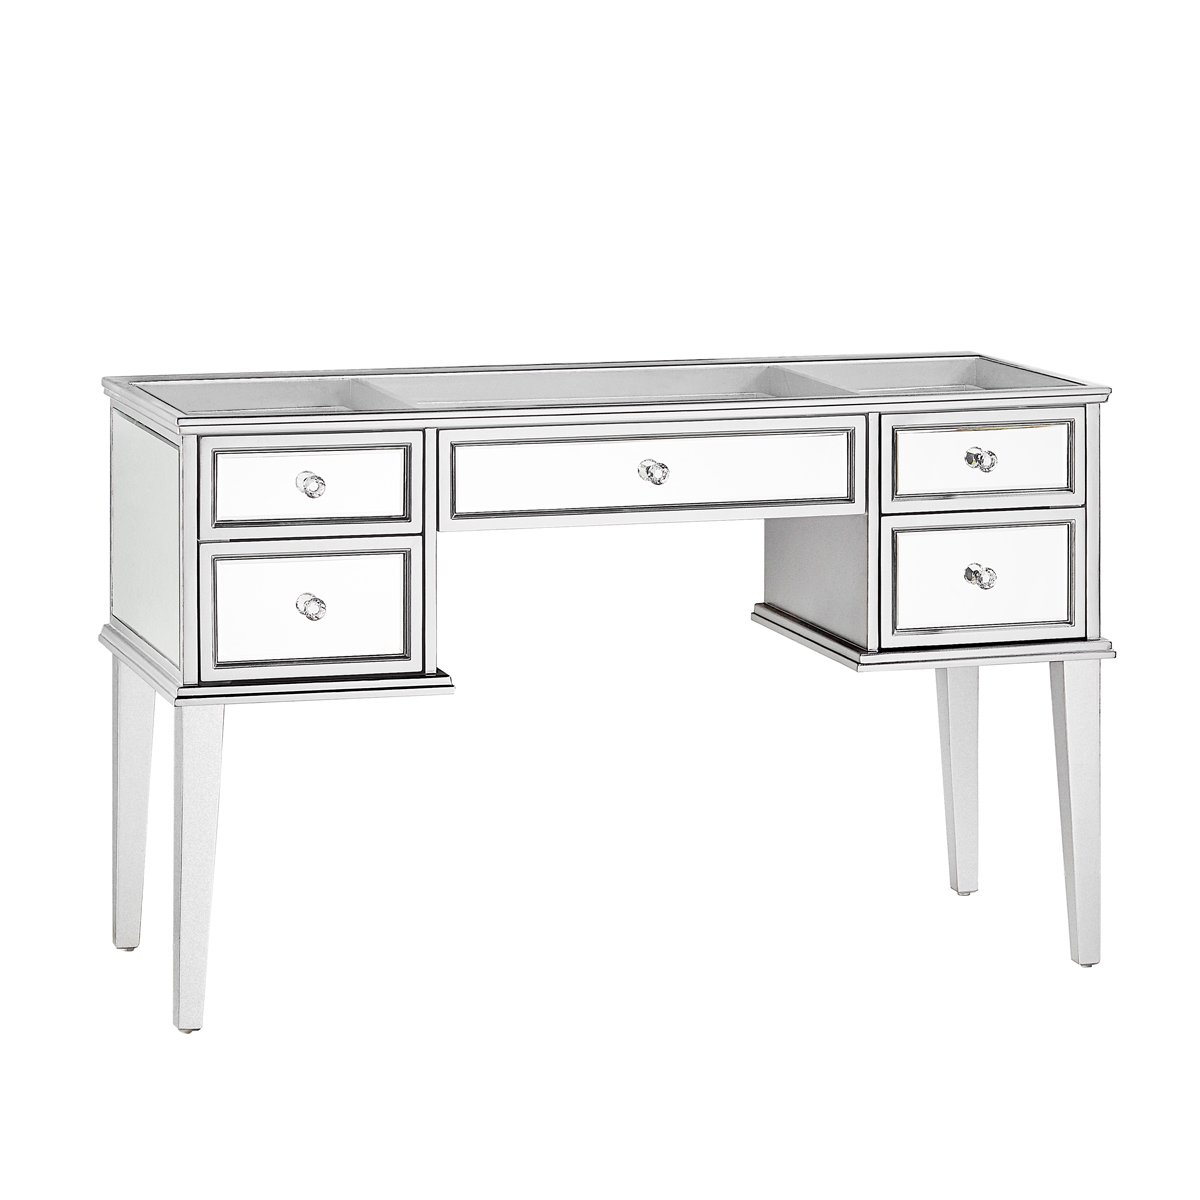 Silver Mirrored Vanity Table